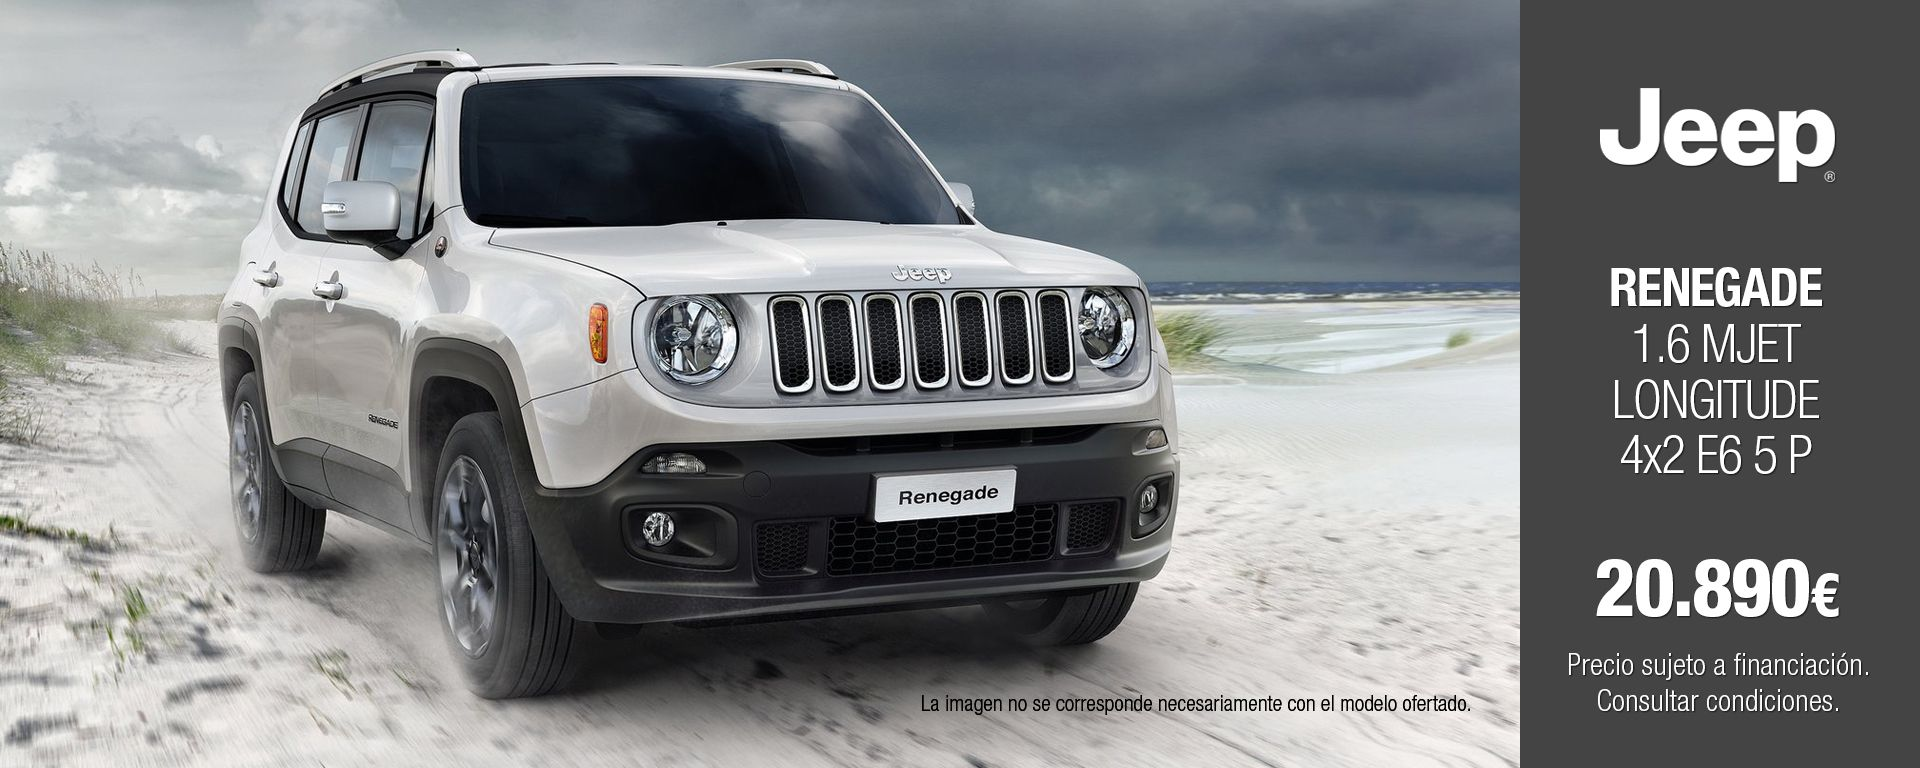 OFERTA JEEP RENEGADE